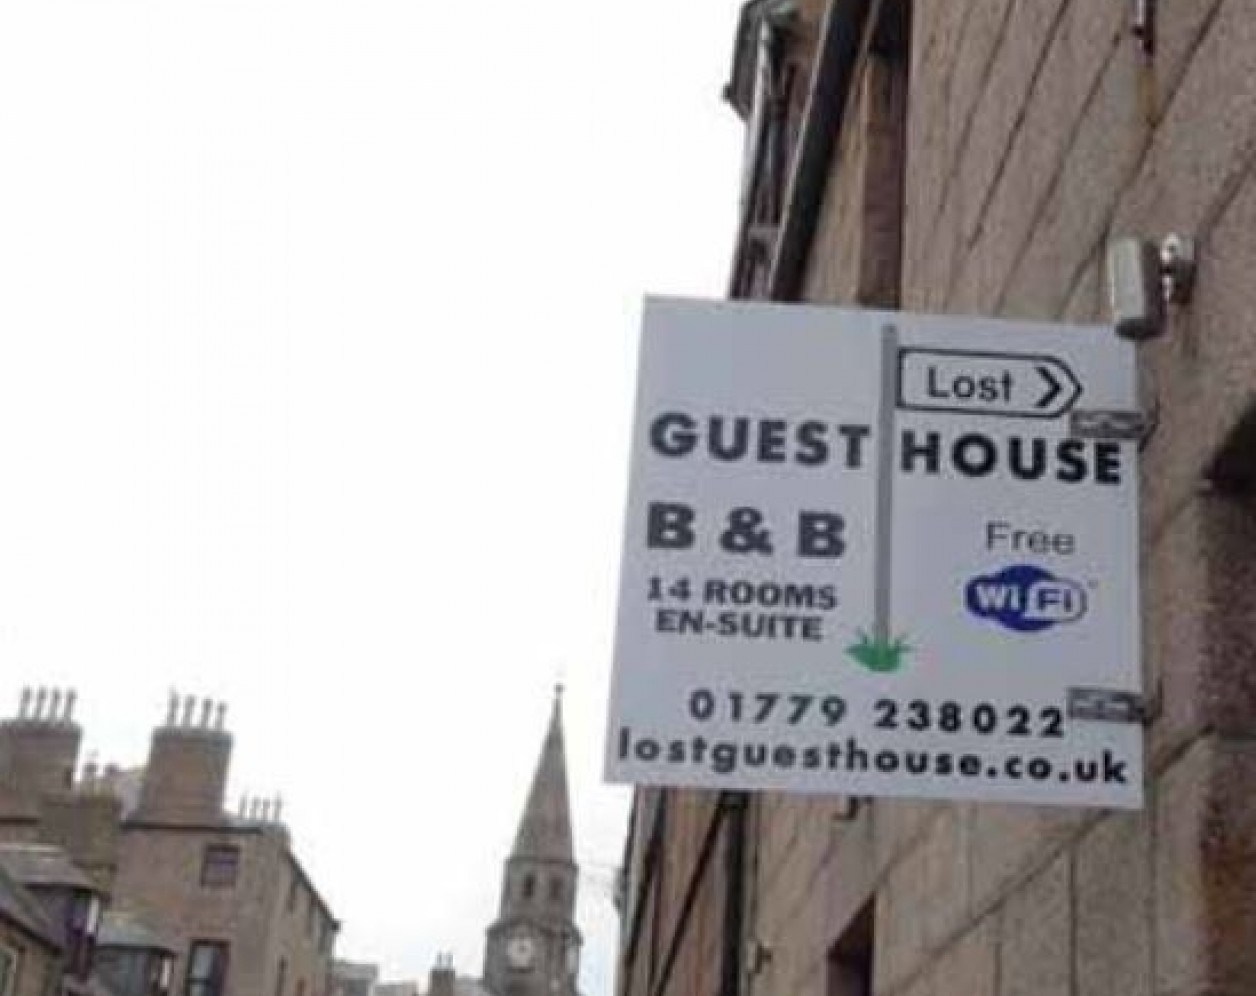 Lost Guest House